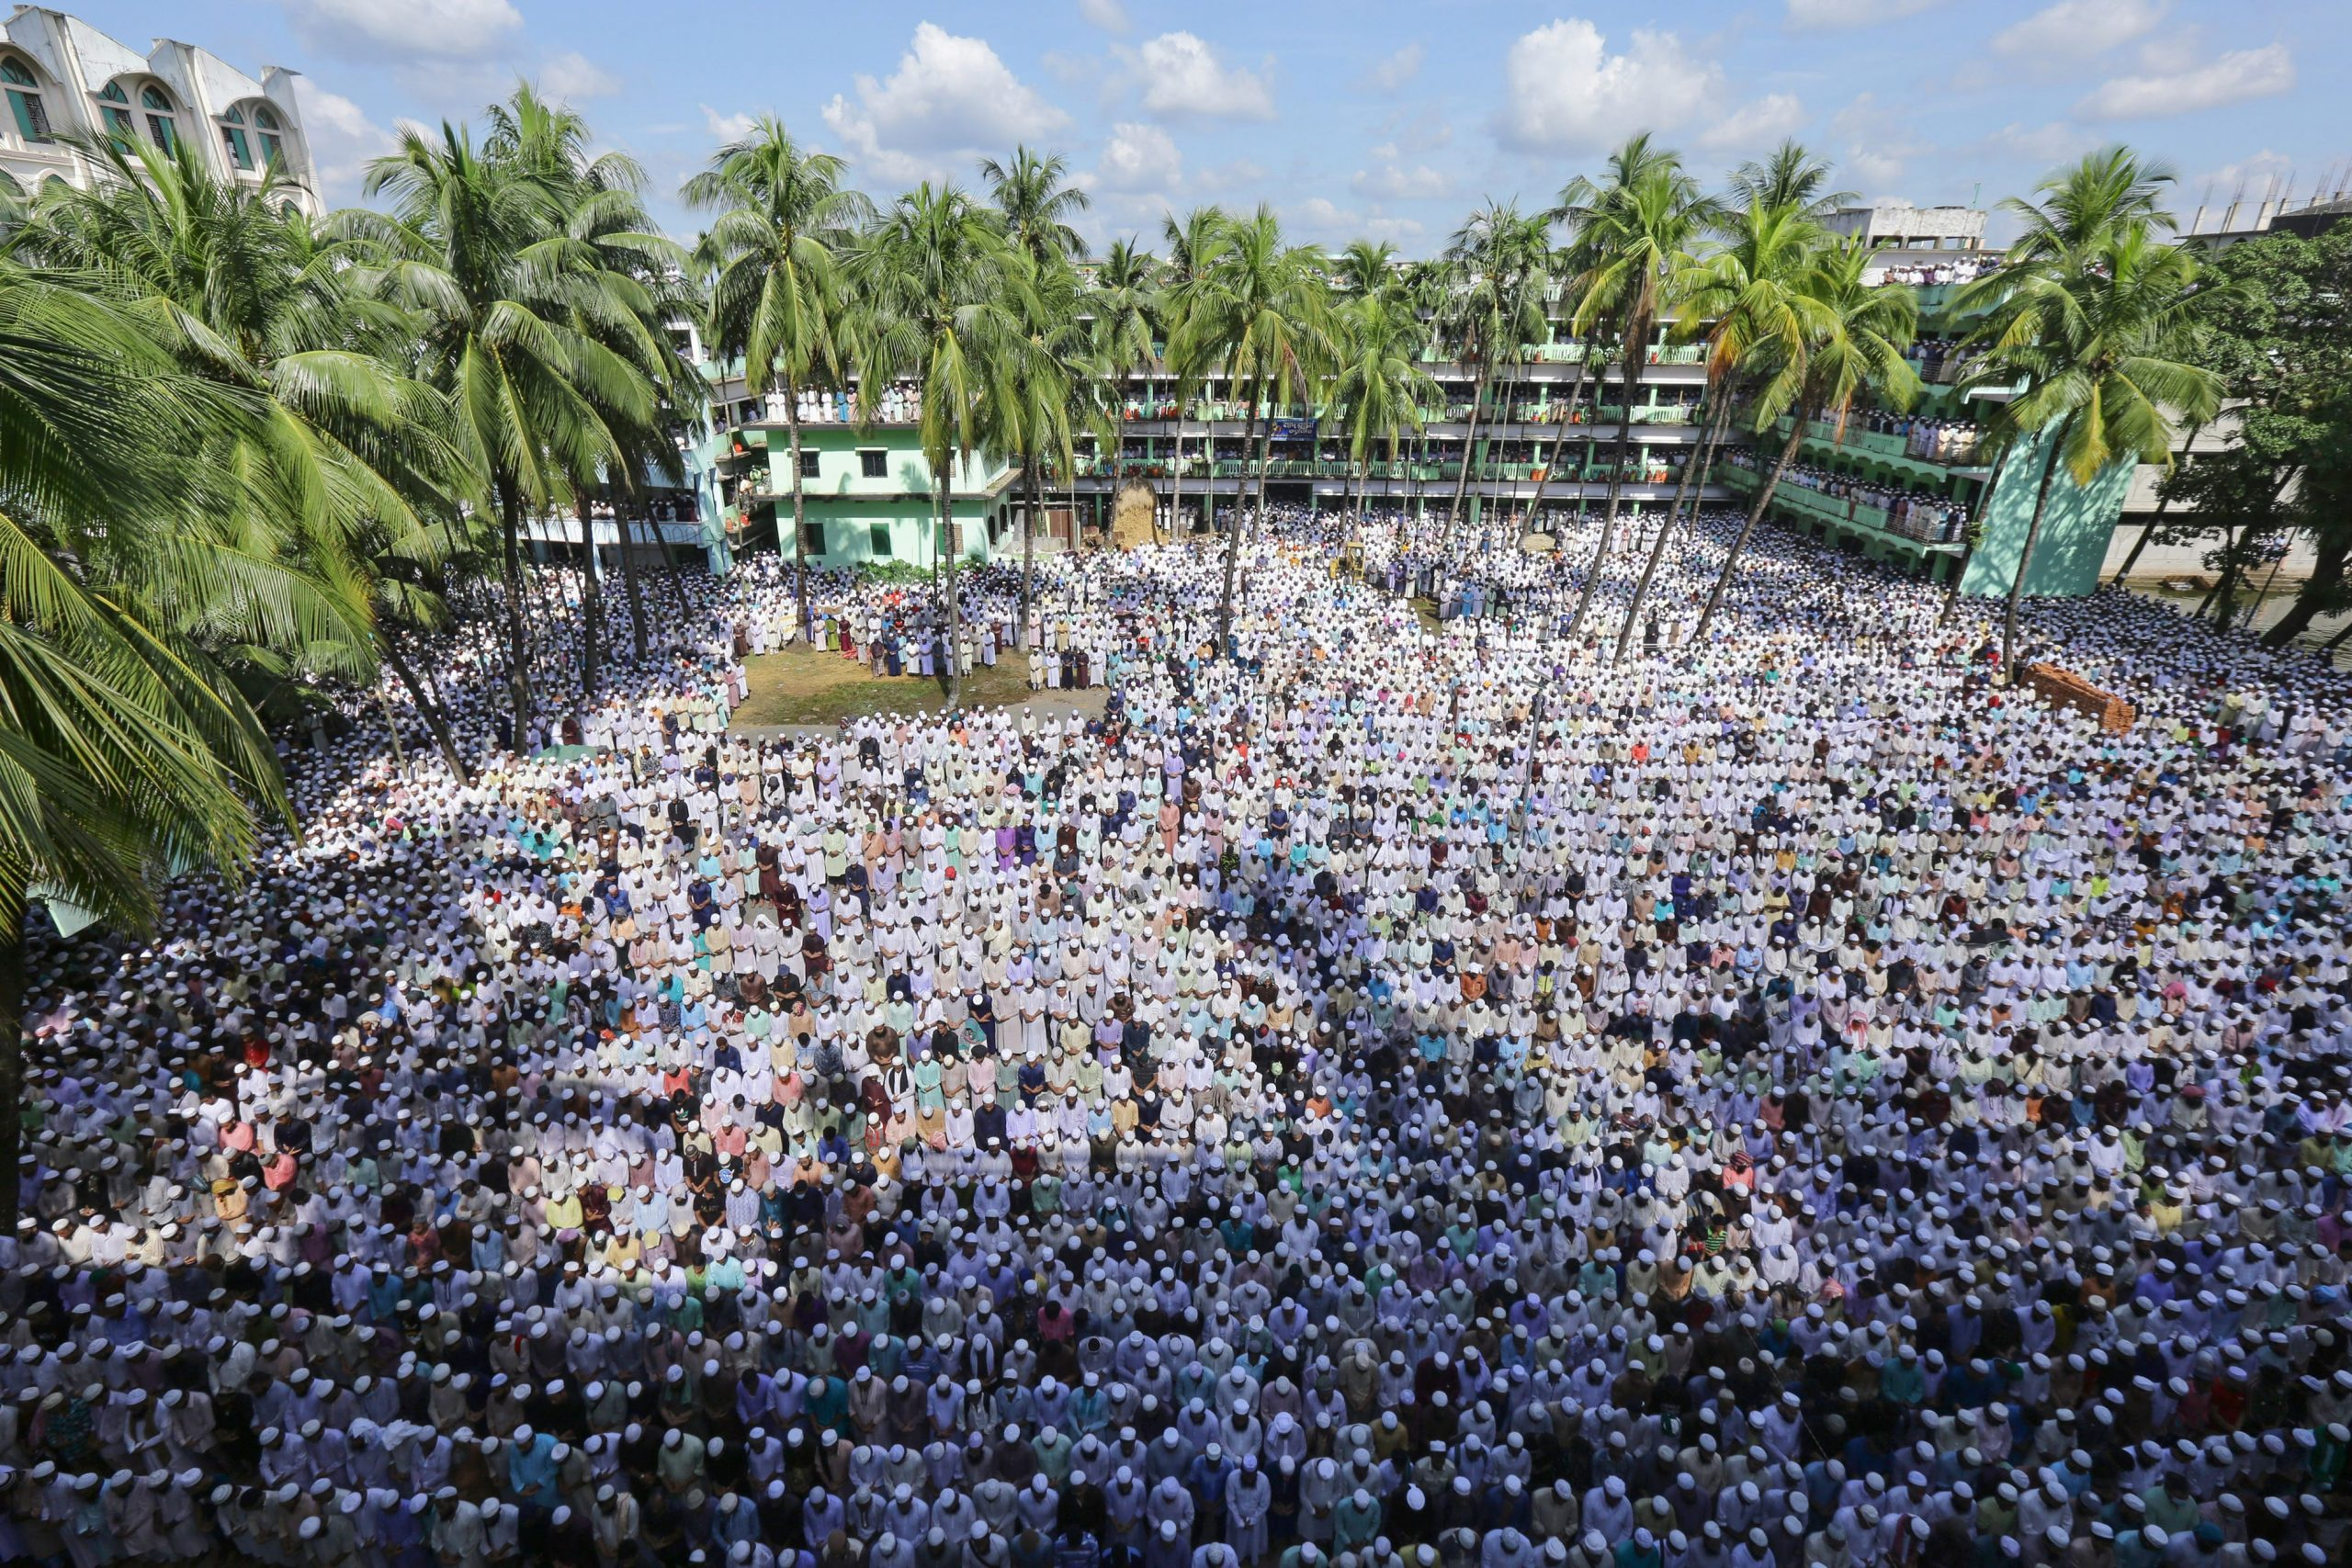 Followers of Allama Shah Ahmad Shafi, who had led the hardline Hefazat-e-Islam group, offer his funeral prayers, in Chittagong on September 19, 2020. (Photo by STR/AFP via Getty Images)